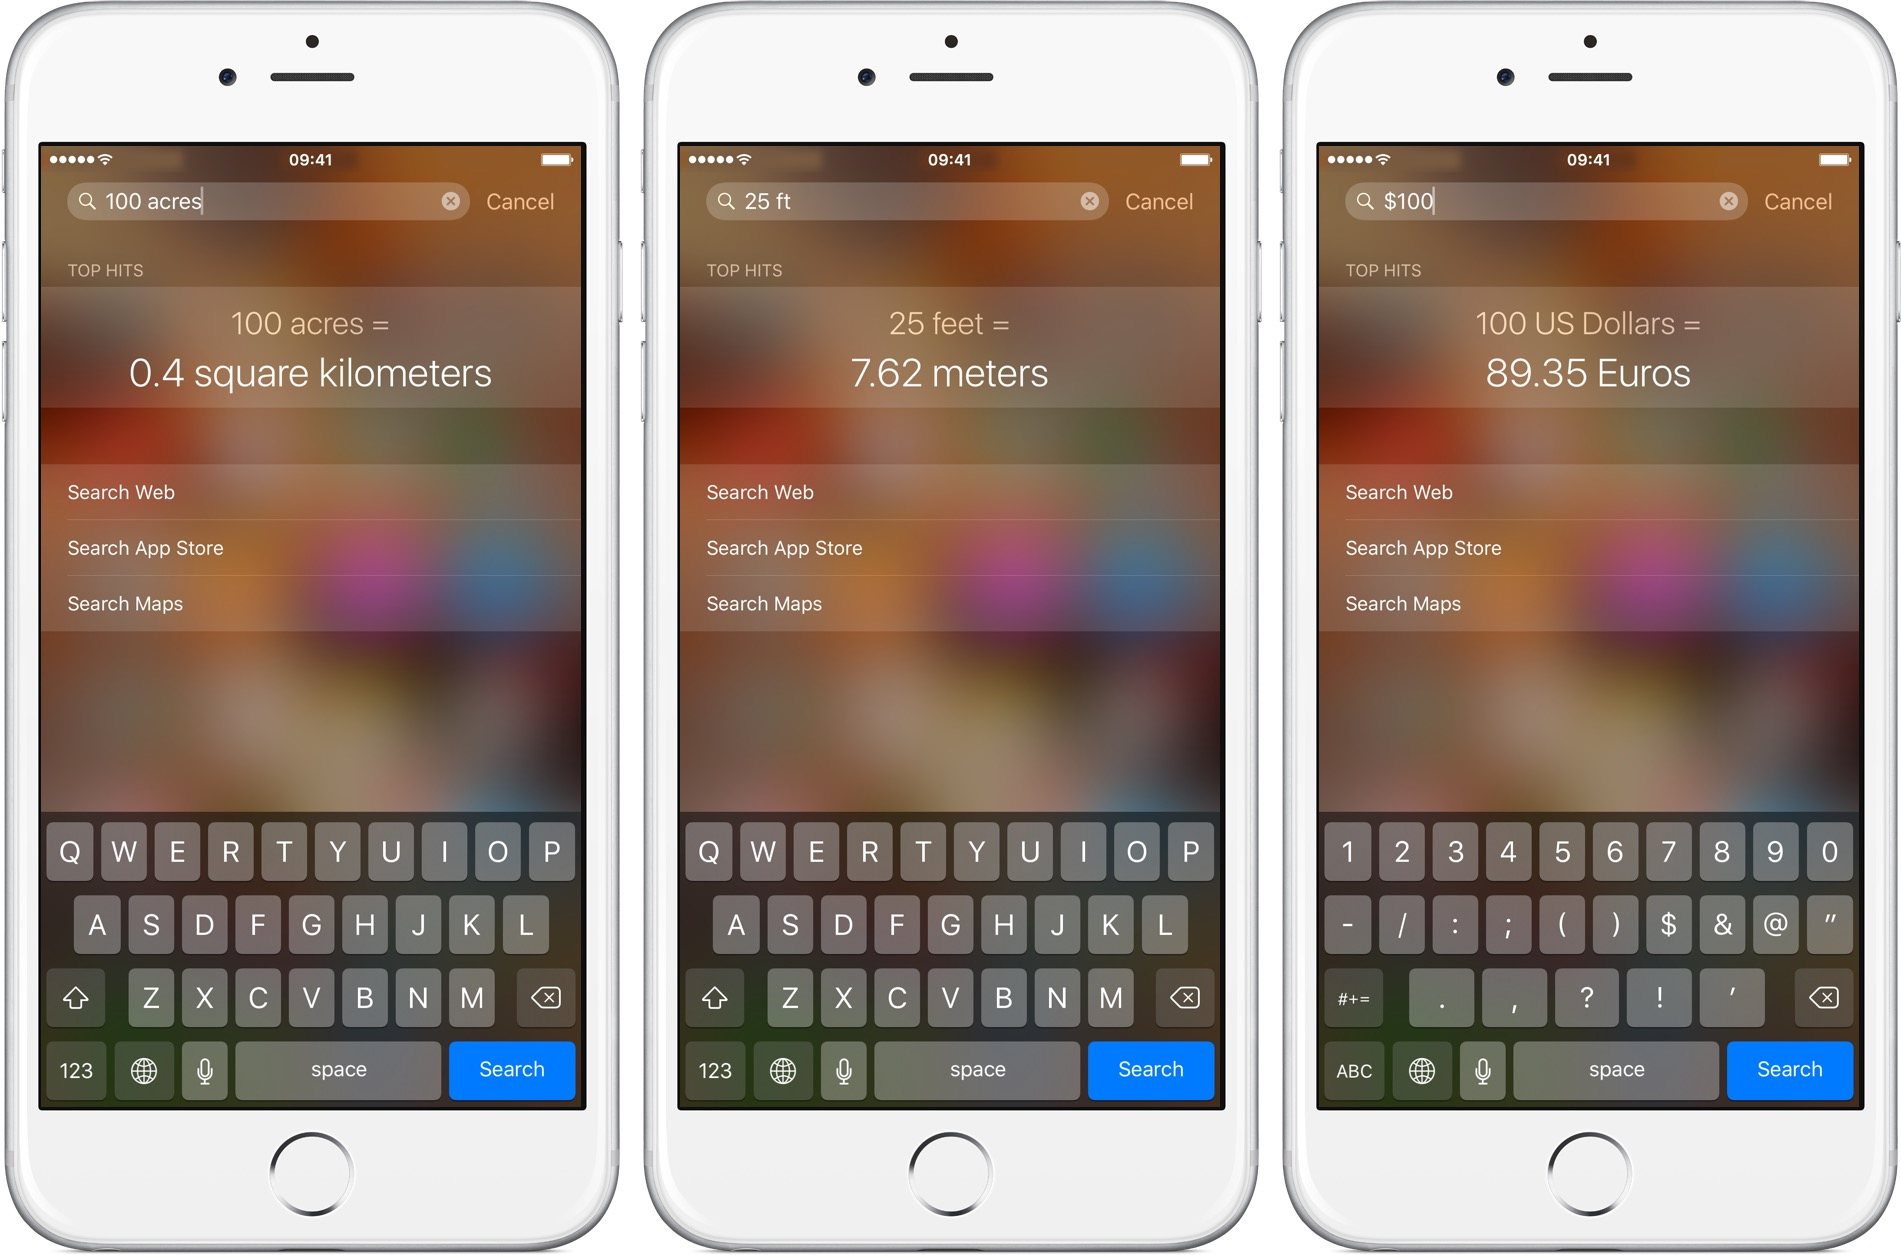 iOS 9 Spotlight unit and currency conversion